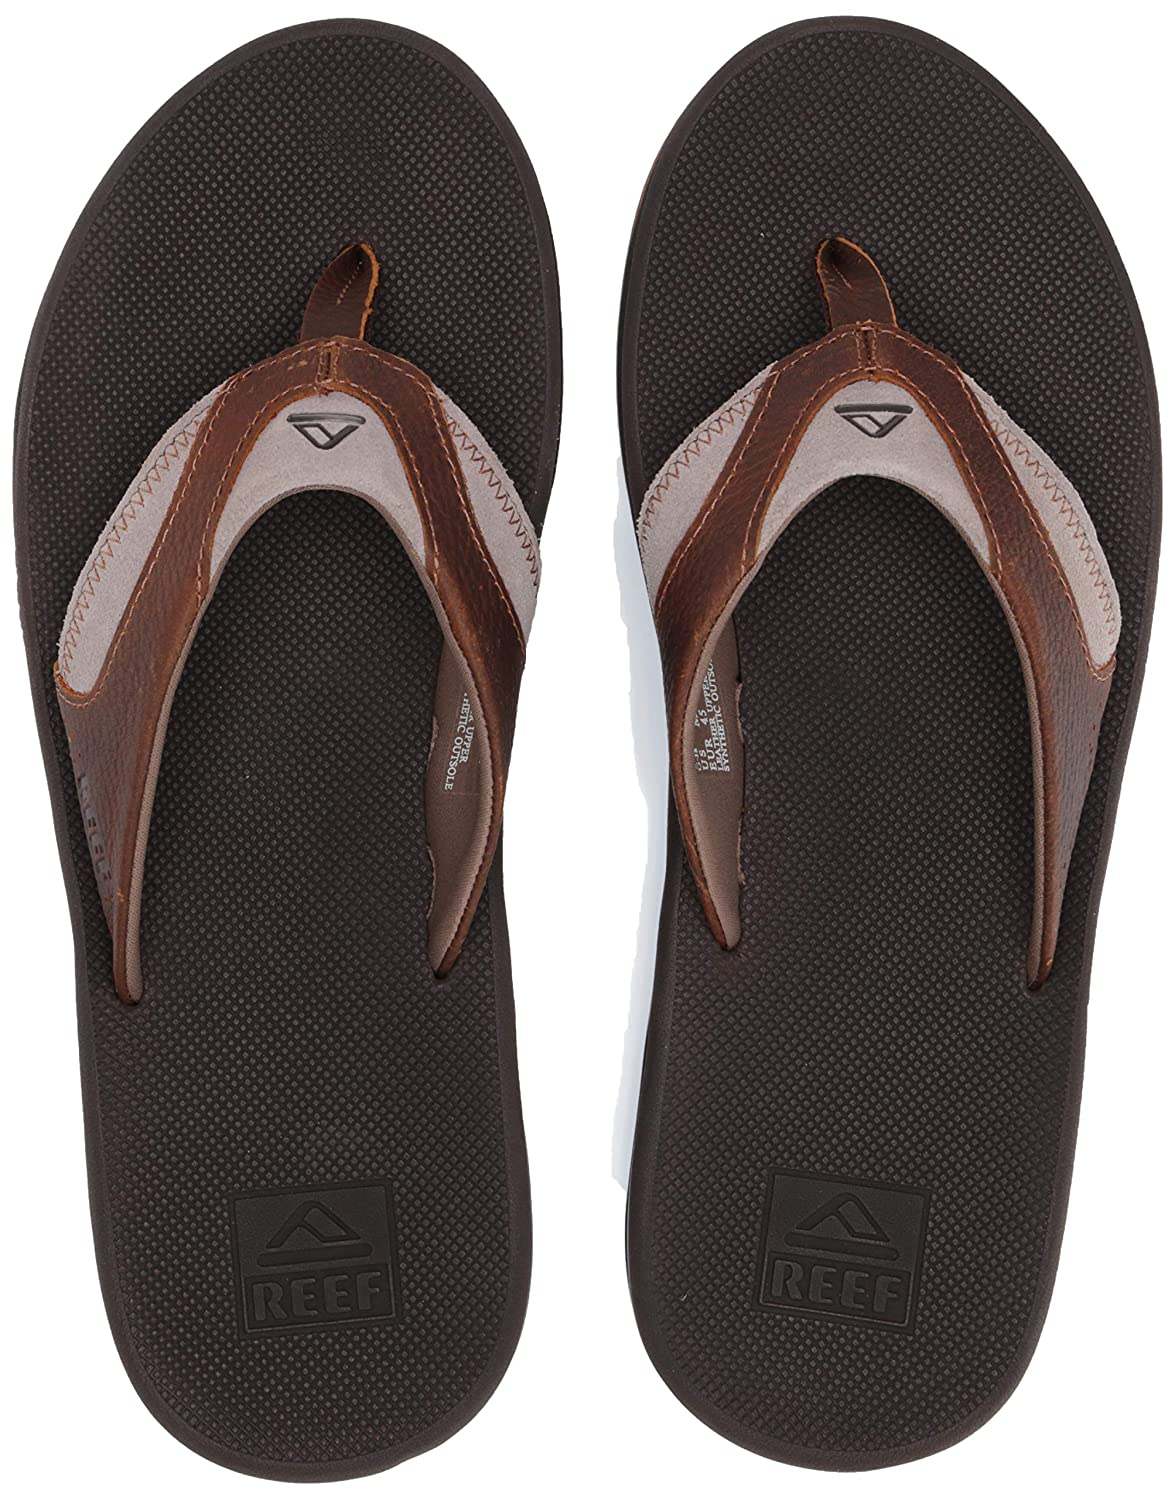 Reef Leather Fanning, Chanclas para Hombre, Marrón (Bro/Brown 4 Br4), 47 EU